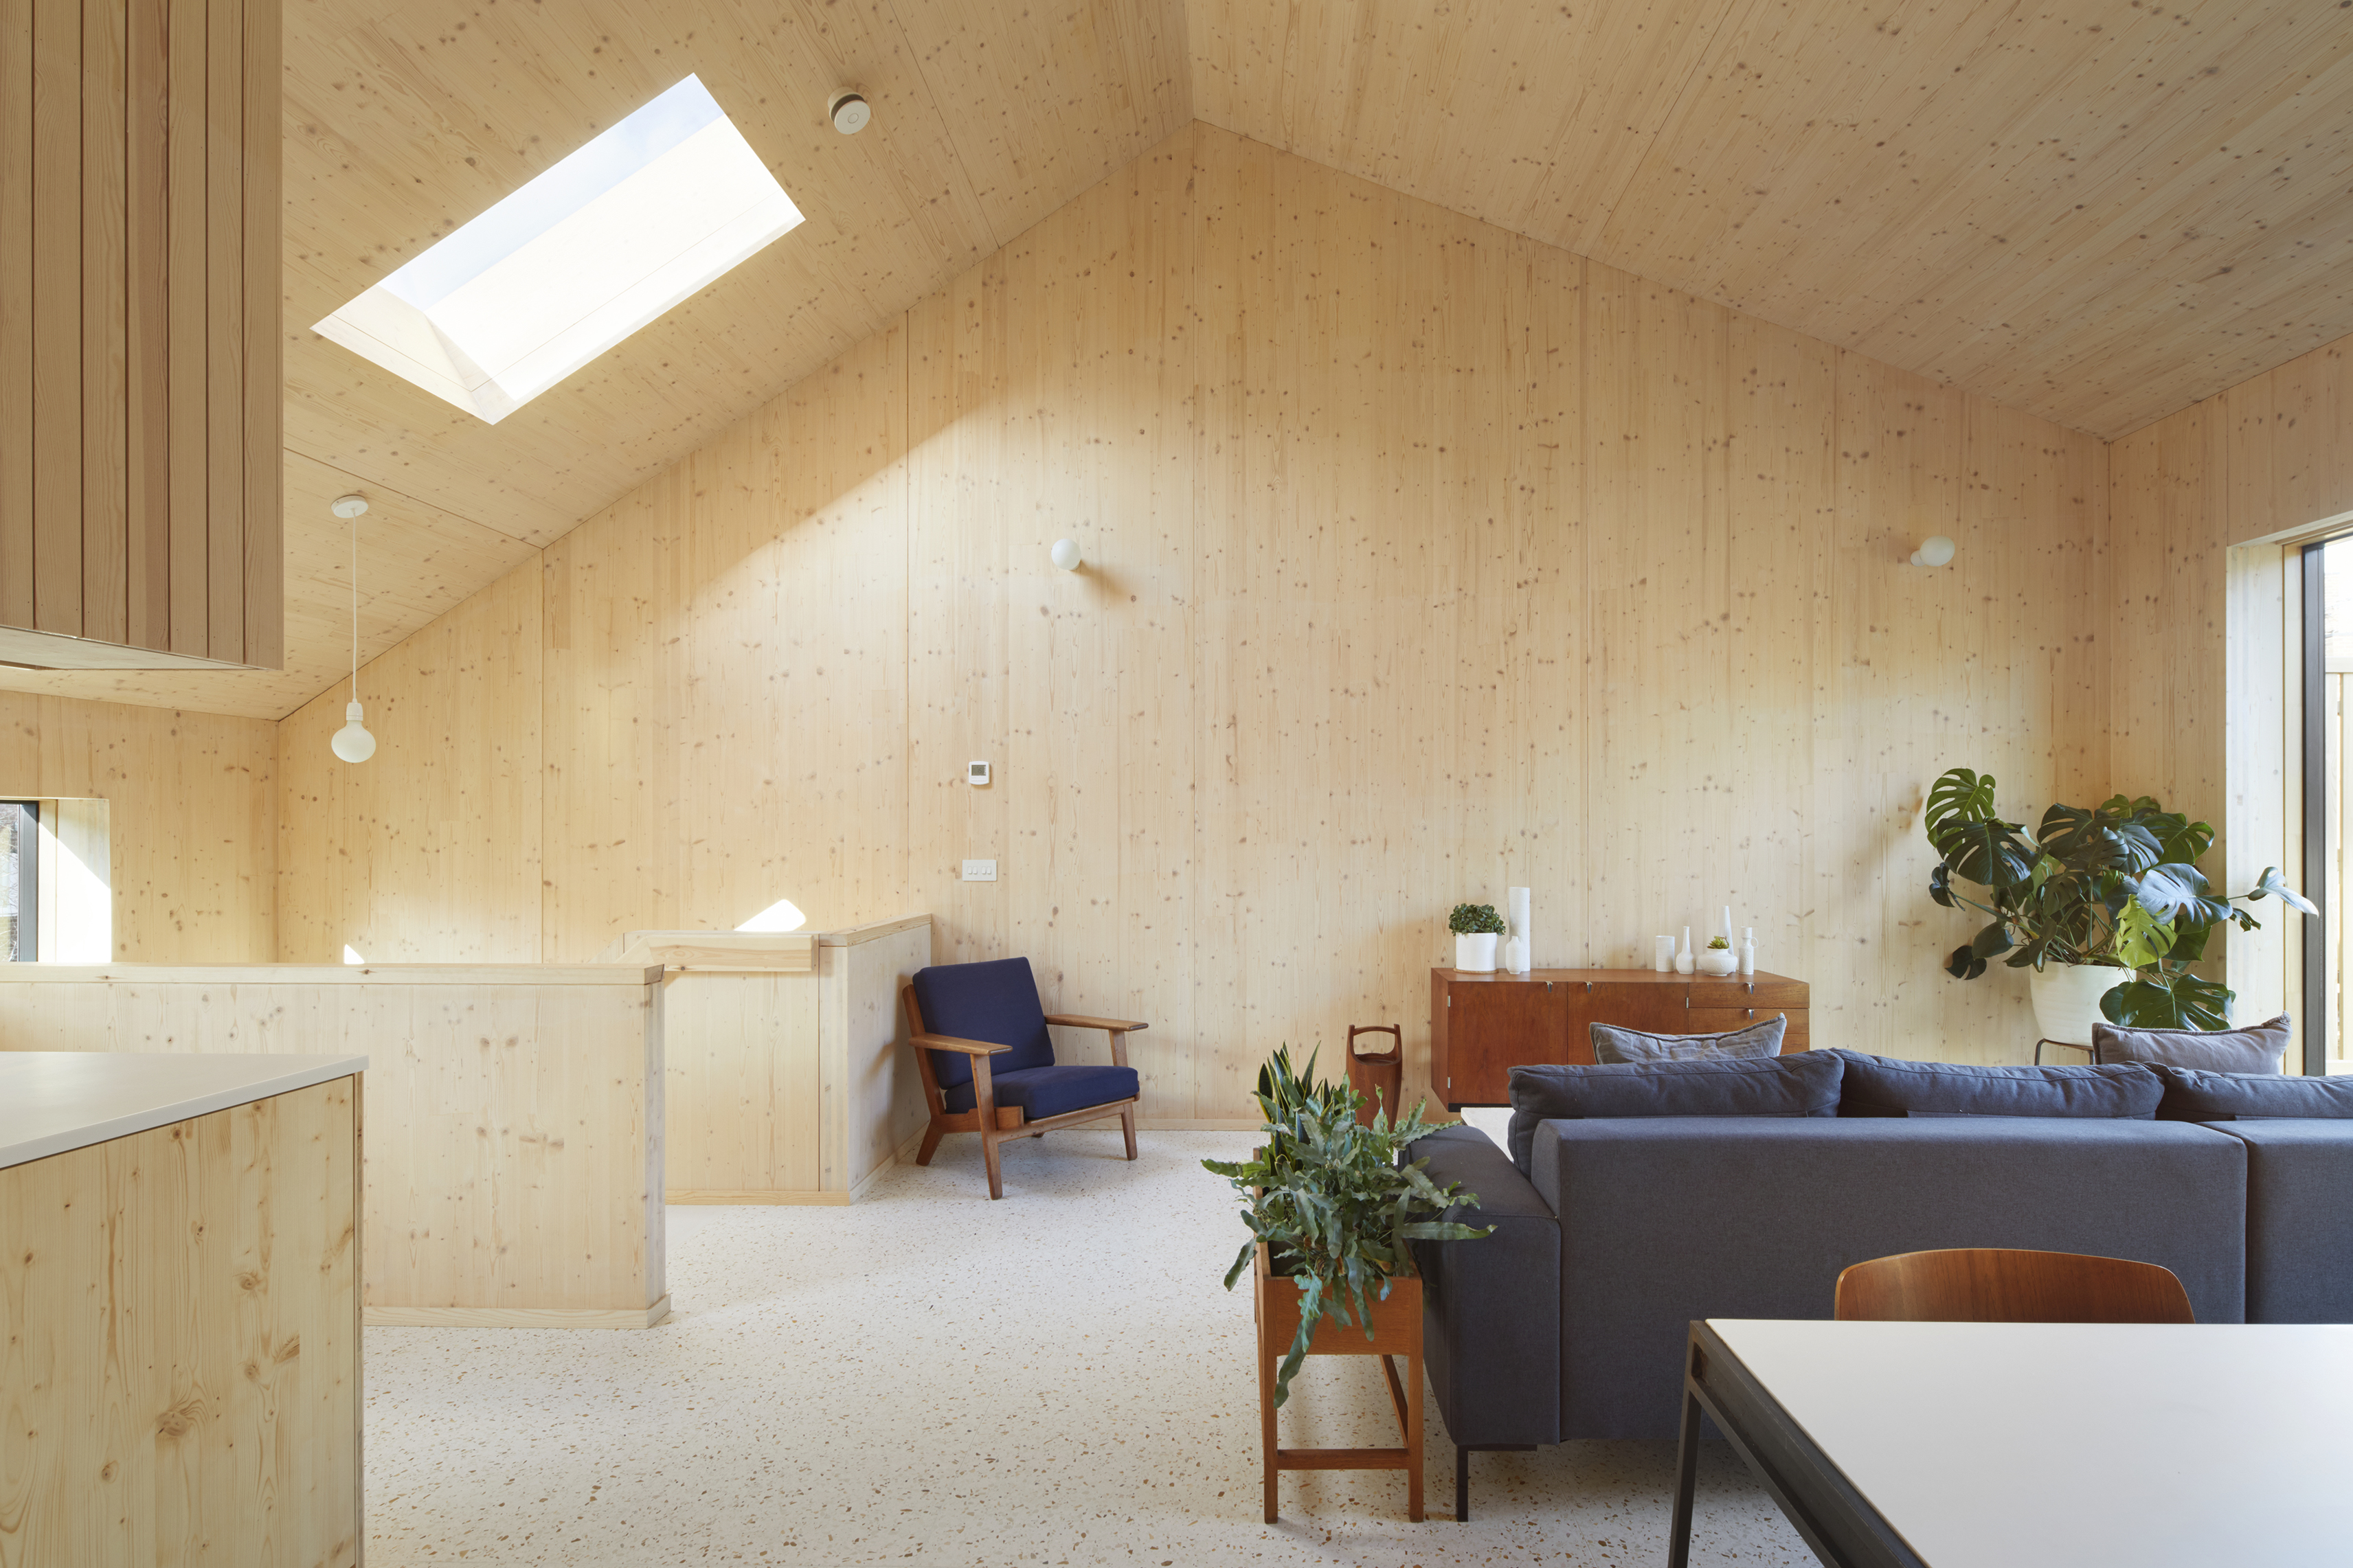 <p>The spruce CLT walls and ceilings create a warm and tactile interior. © Jack Hobhouse</p>